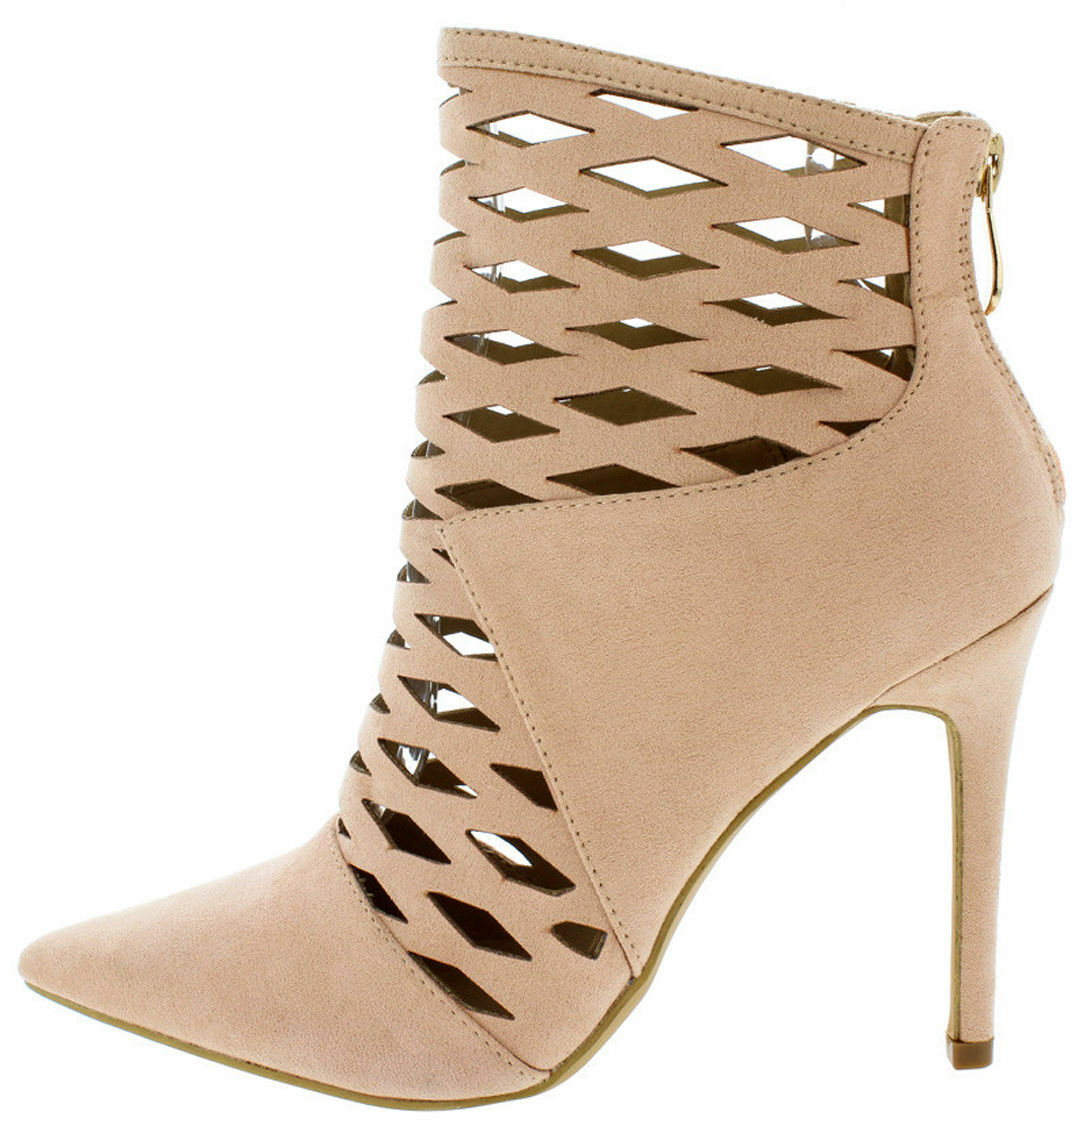 Nude *Celebrity Style* Lasercut Caged Ankle Bootie Heels, US 8